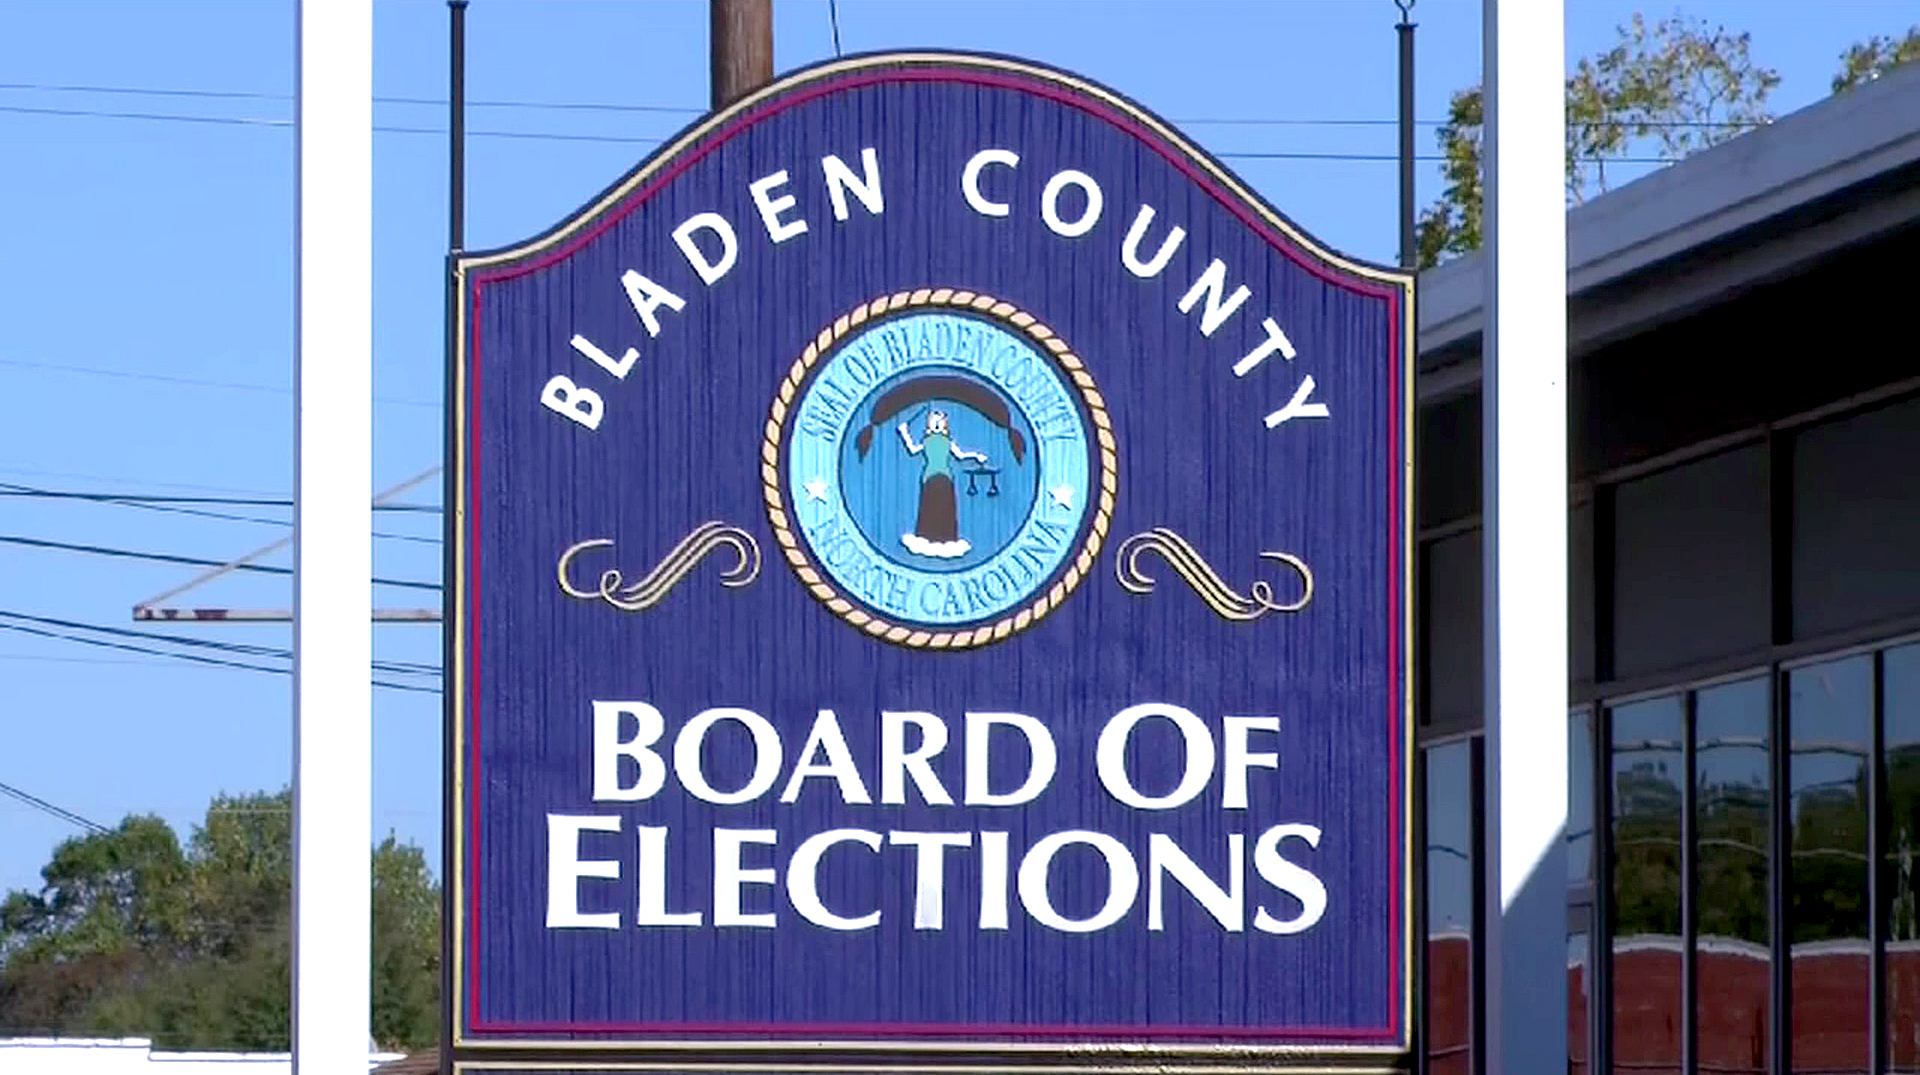 Amid-N.C.-election-fraud-investigation,-Bladen-County-board-member-resigns